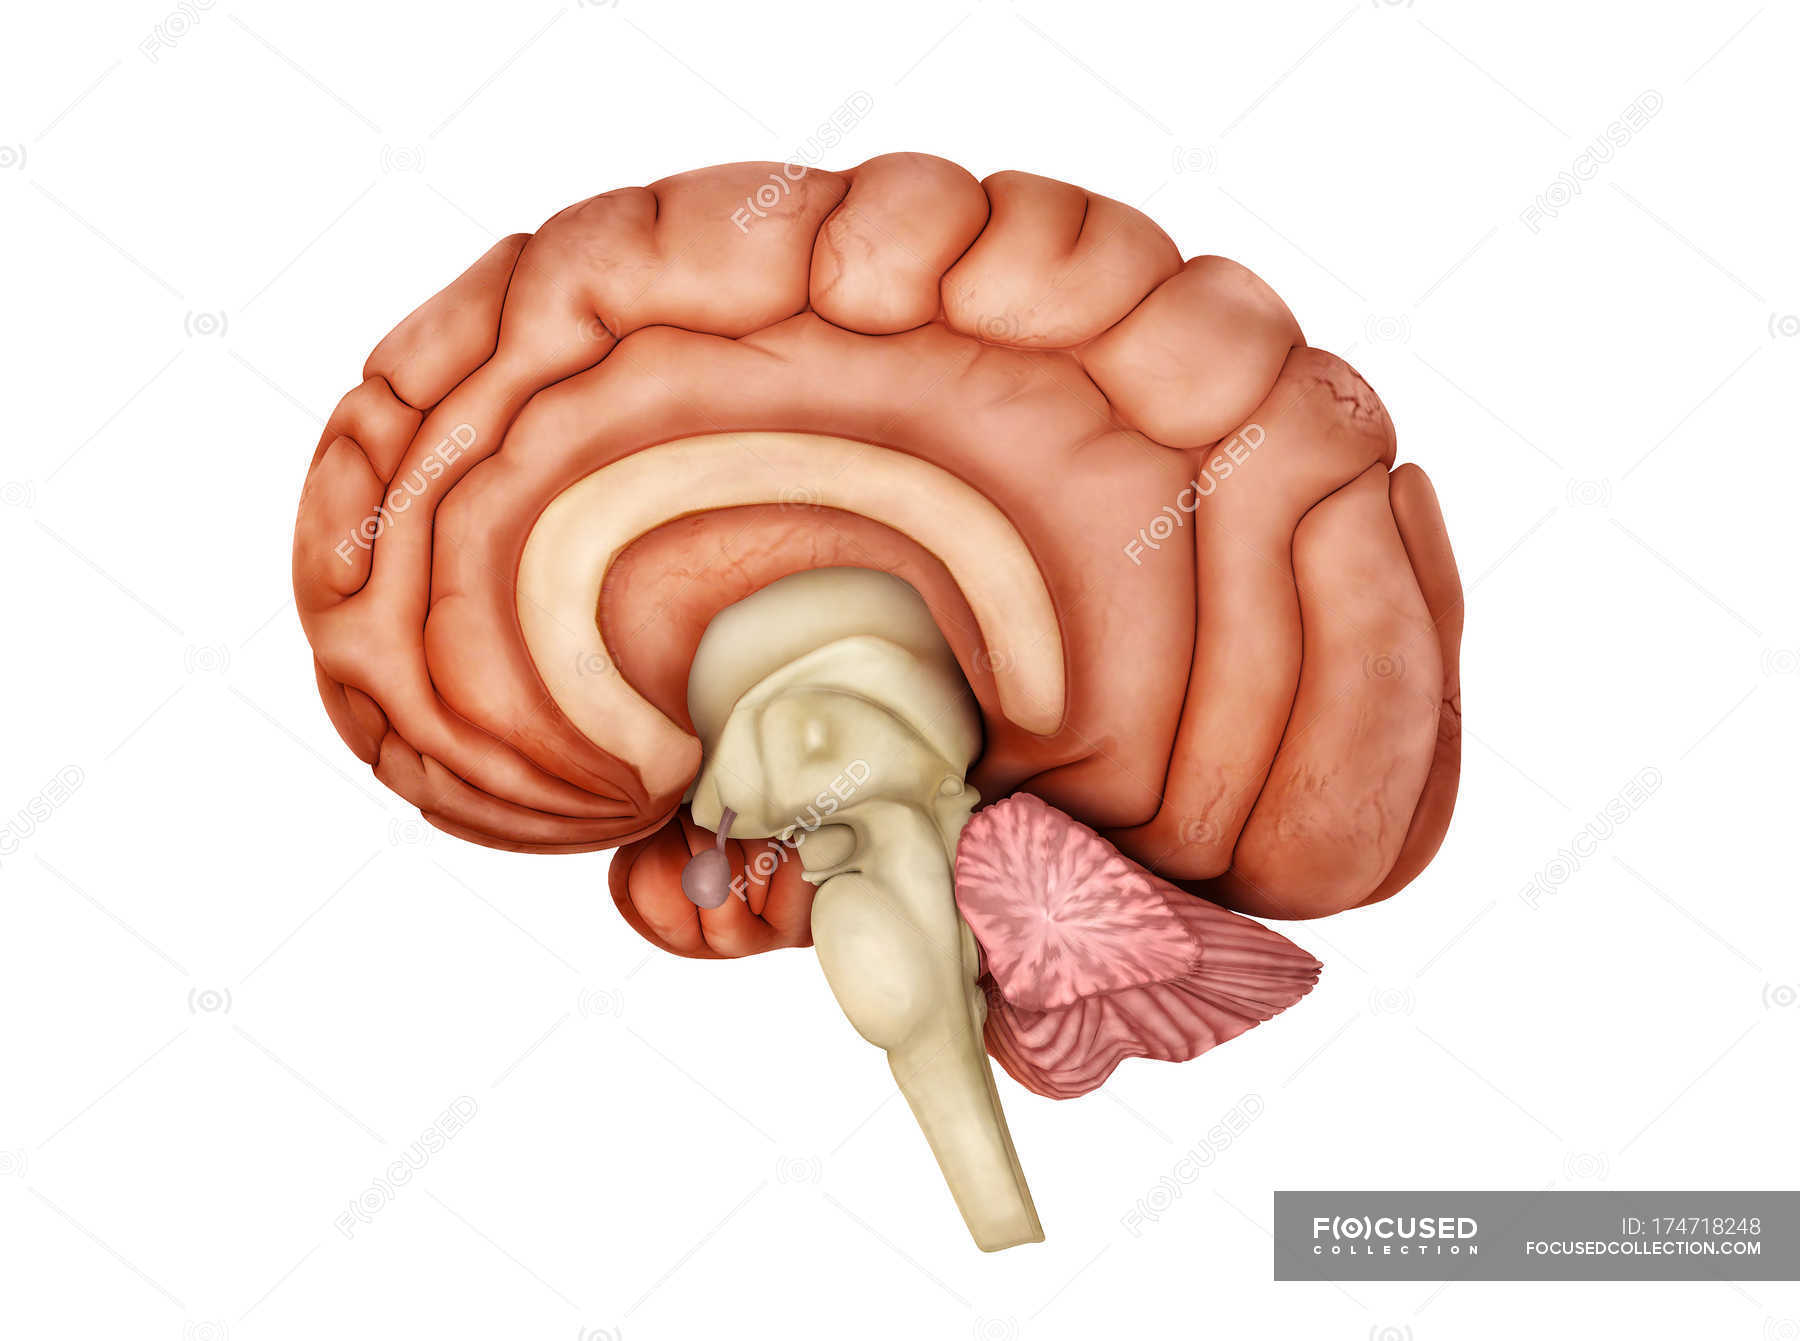 Medical Illustration Of Human Brain Anatomy Stock Photo 174718248